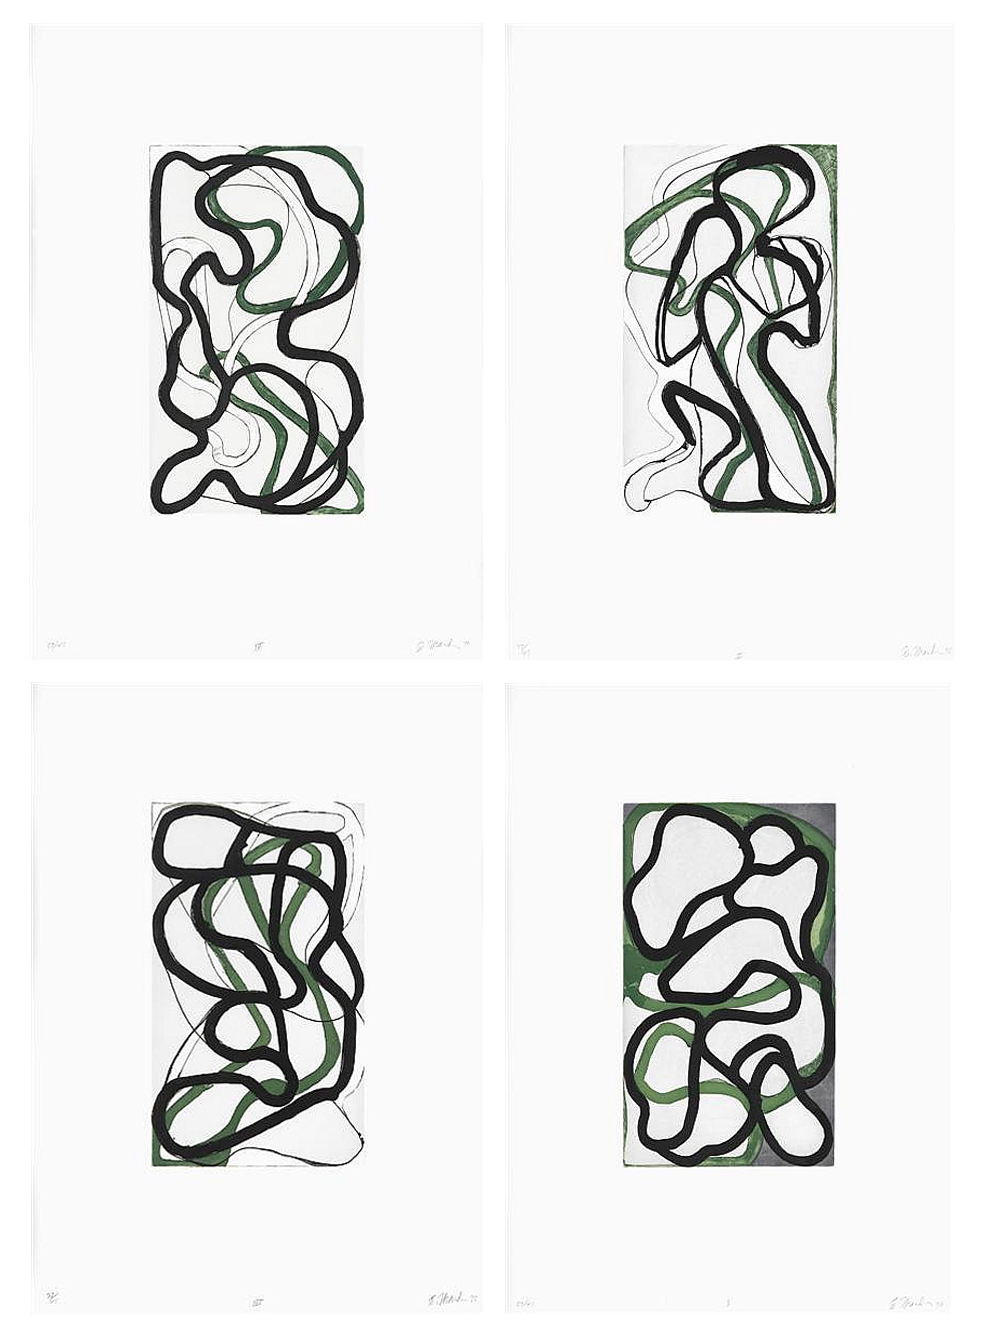 Brice Marden Suzhou I-IV, 1998 set of 4 etchings with other media on Somerset paper 25 5/8 x 18 3/4 inches each (37.5 x 22.2 cm) Edition of 45